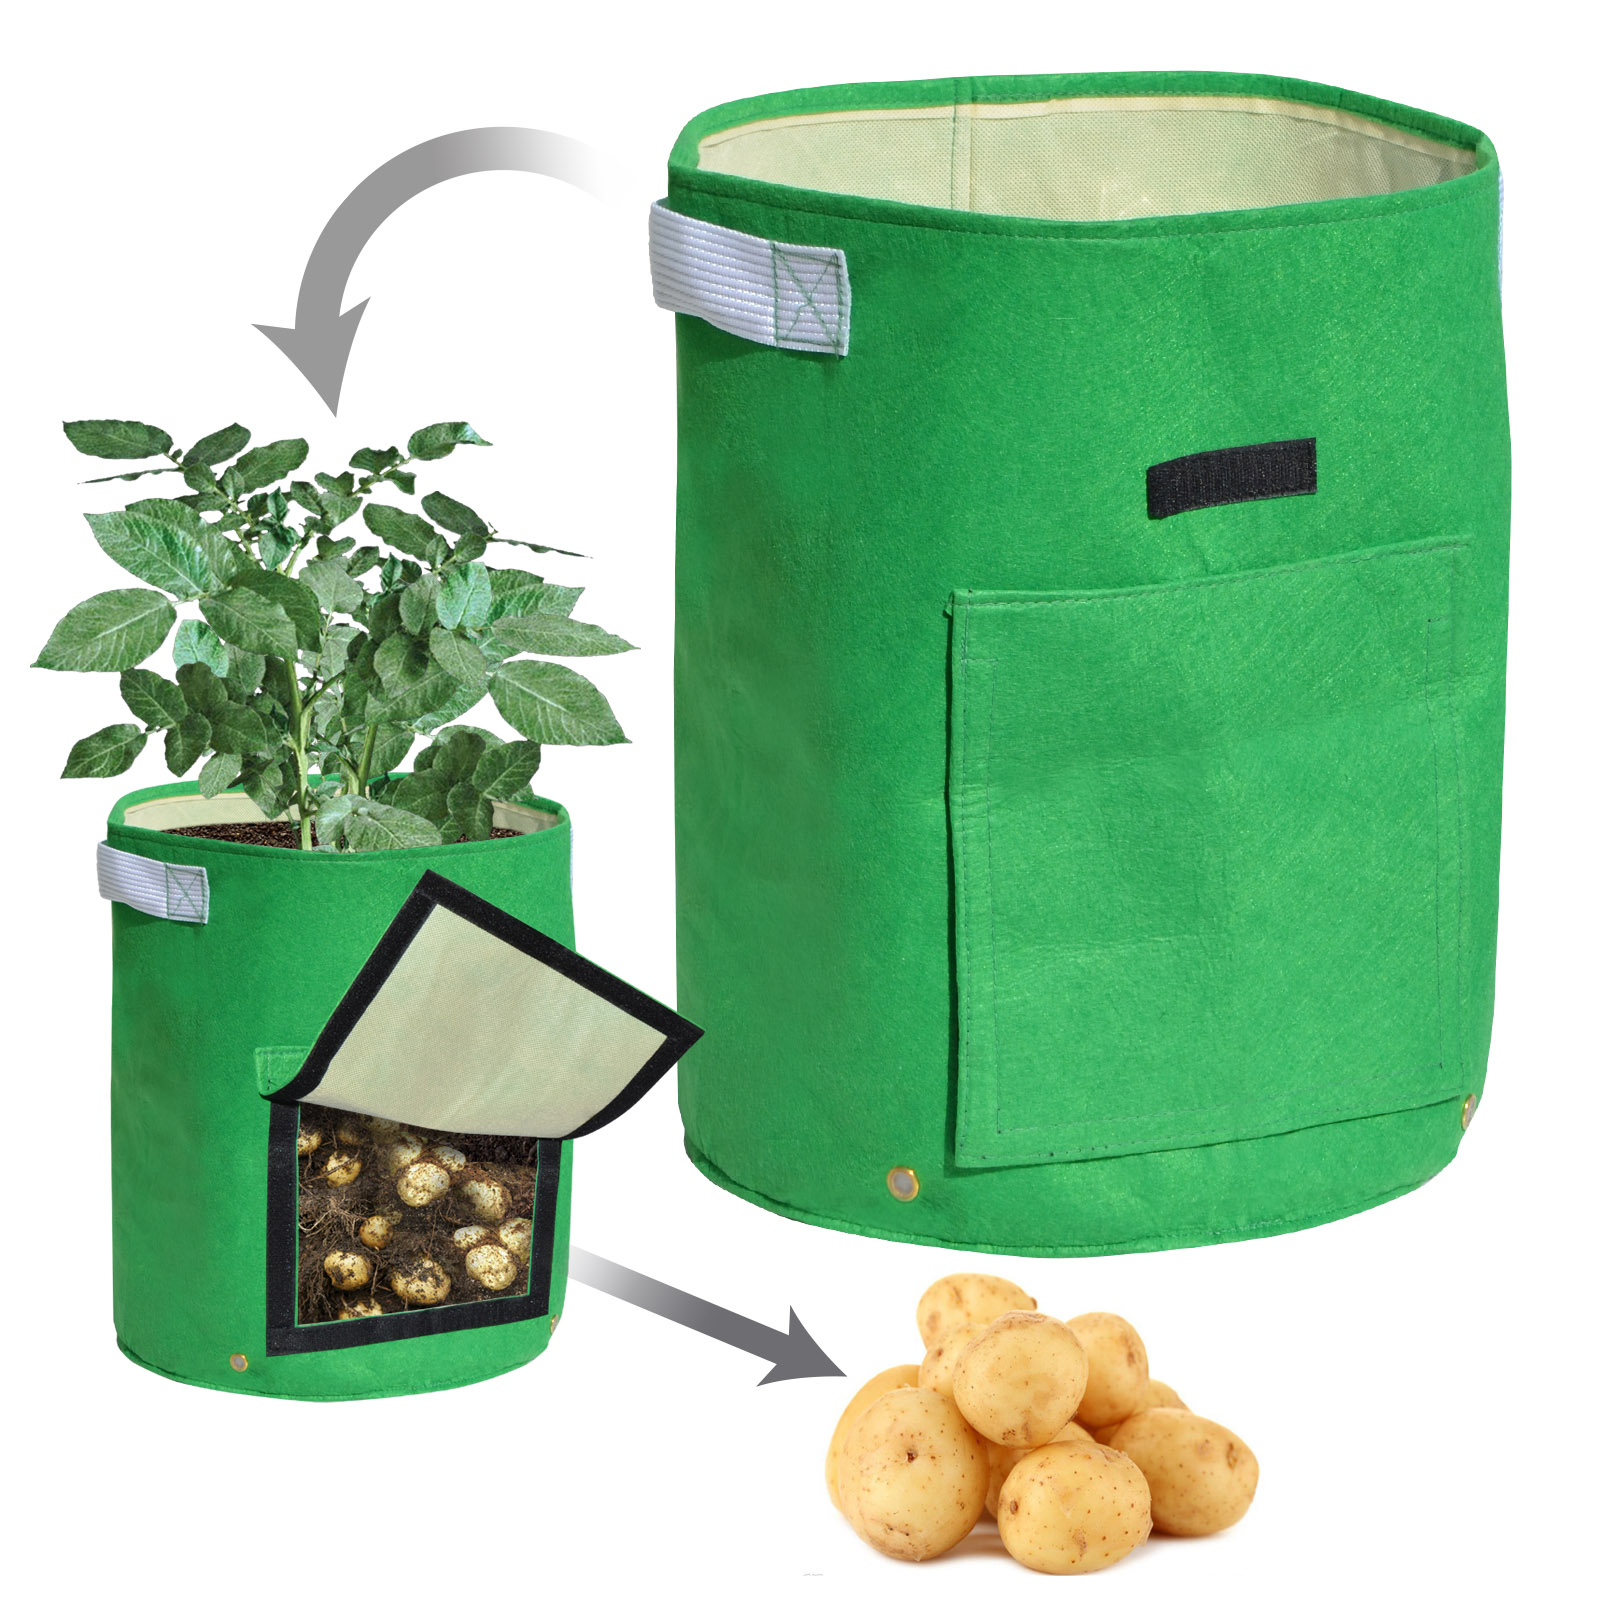 Strong Camel Garden Potato Grow Bag Planter Bag Felt Fabric for Vegetables Container Tub w Access Flap 2 PACK